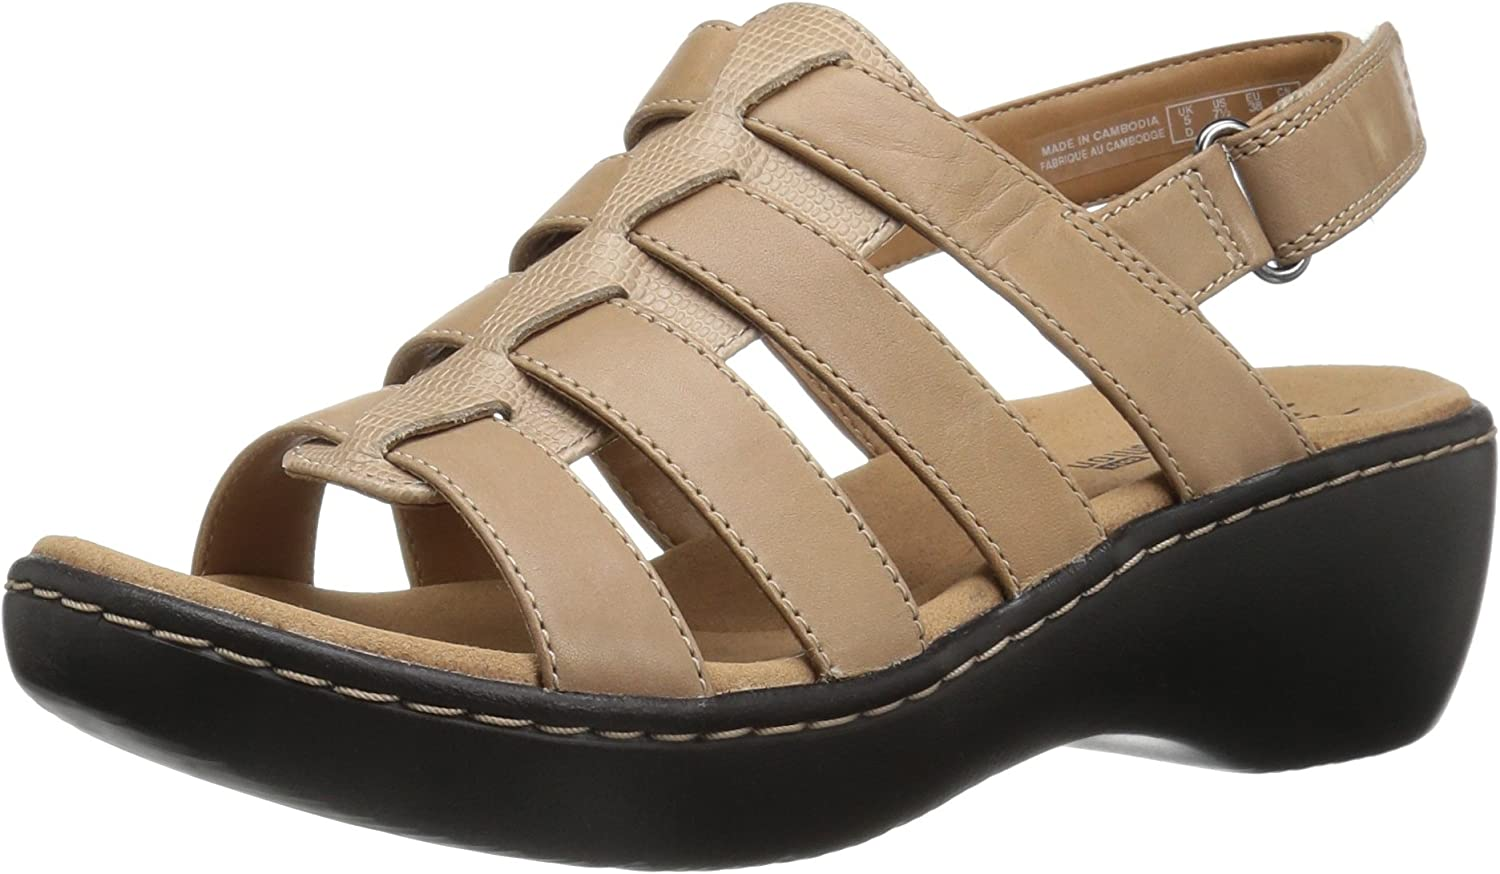 Clarks Womens Delana Maloren Dress Sandal